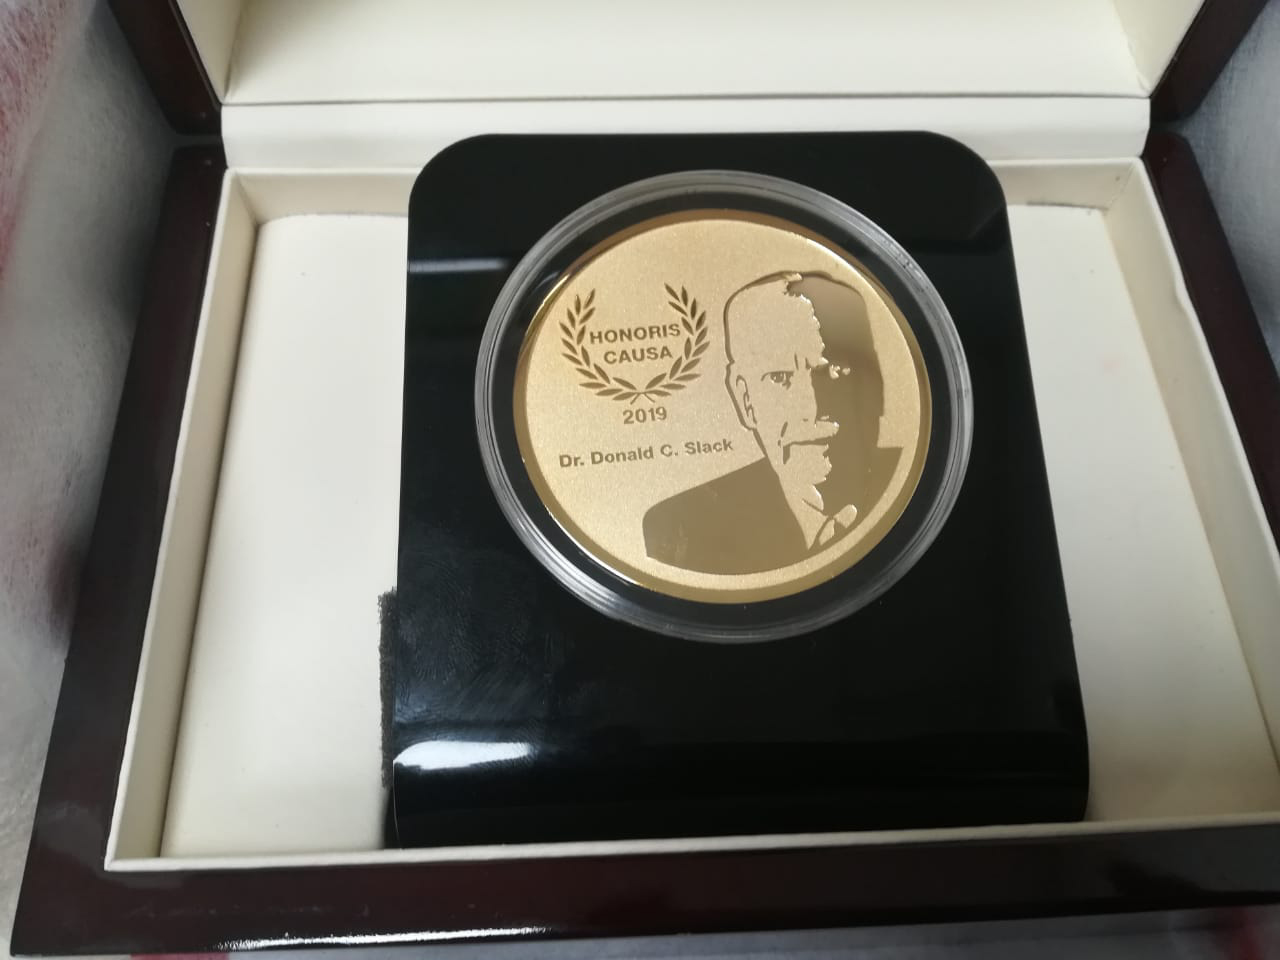 Donald Slack's Honoris Causa Medal from Chapingo Autonomous University